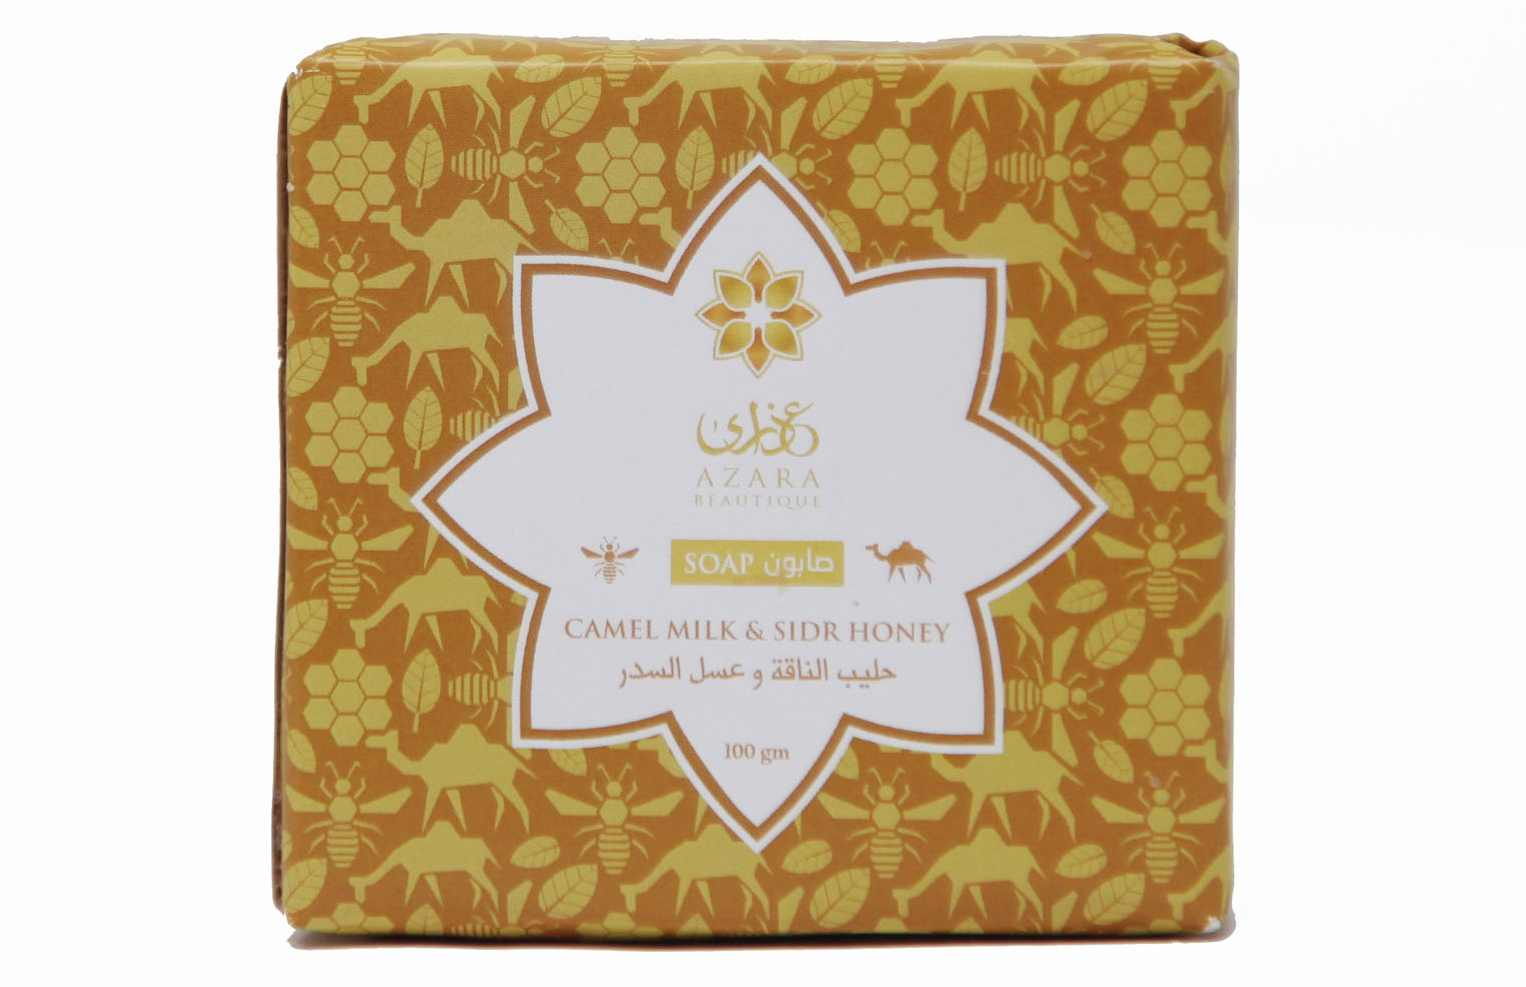 Azara Beautique Camel Milk and Sidr Honey Soap